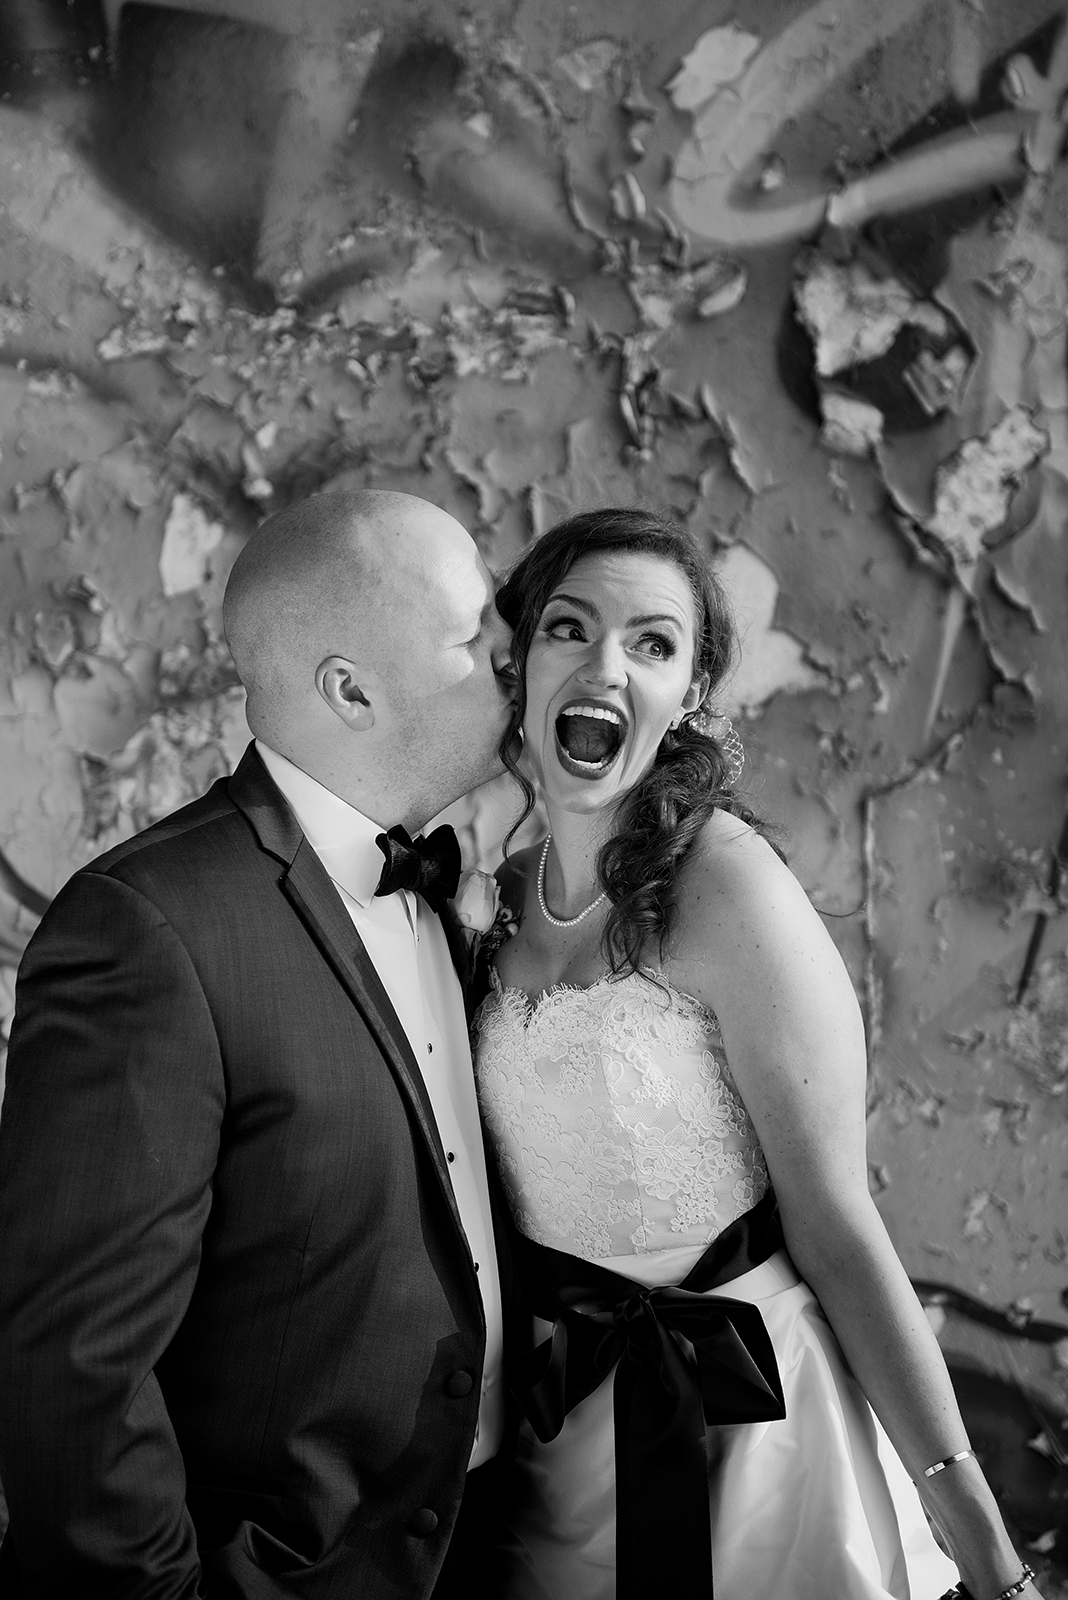 Funny Bride and Groom Portrait